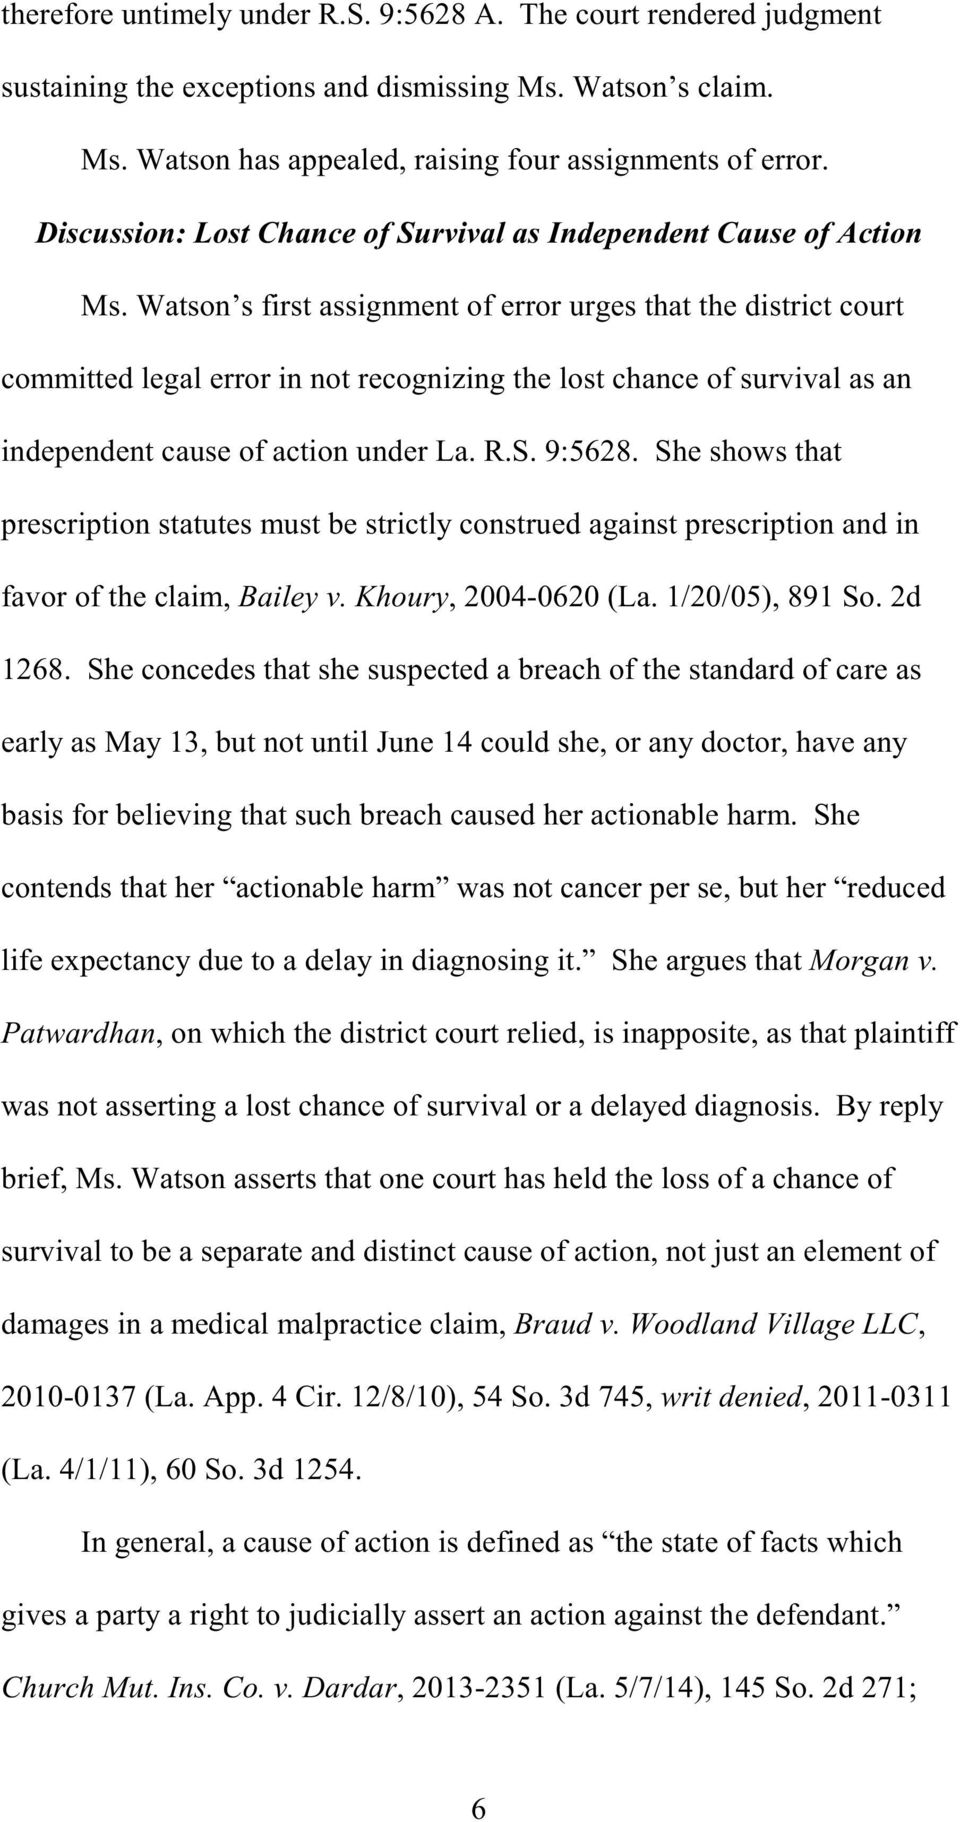 Watson s first assignment of error urges that the district court committed legal error in not recognizing the lost chance of survival as an independent cause of action under La. R.S. 9:5628.